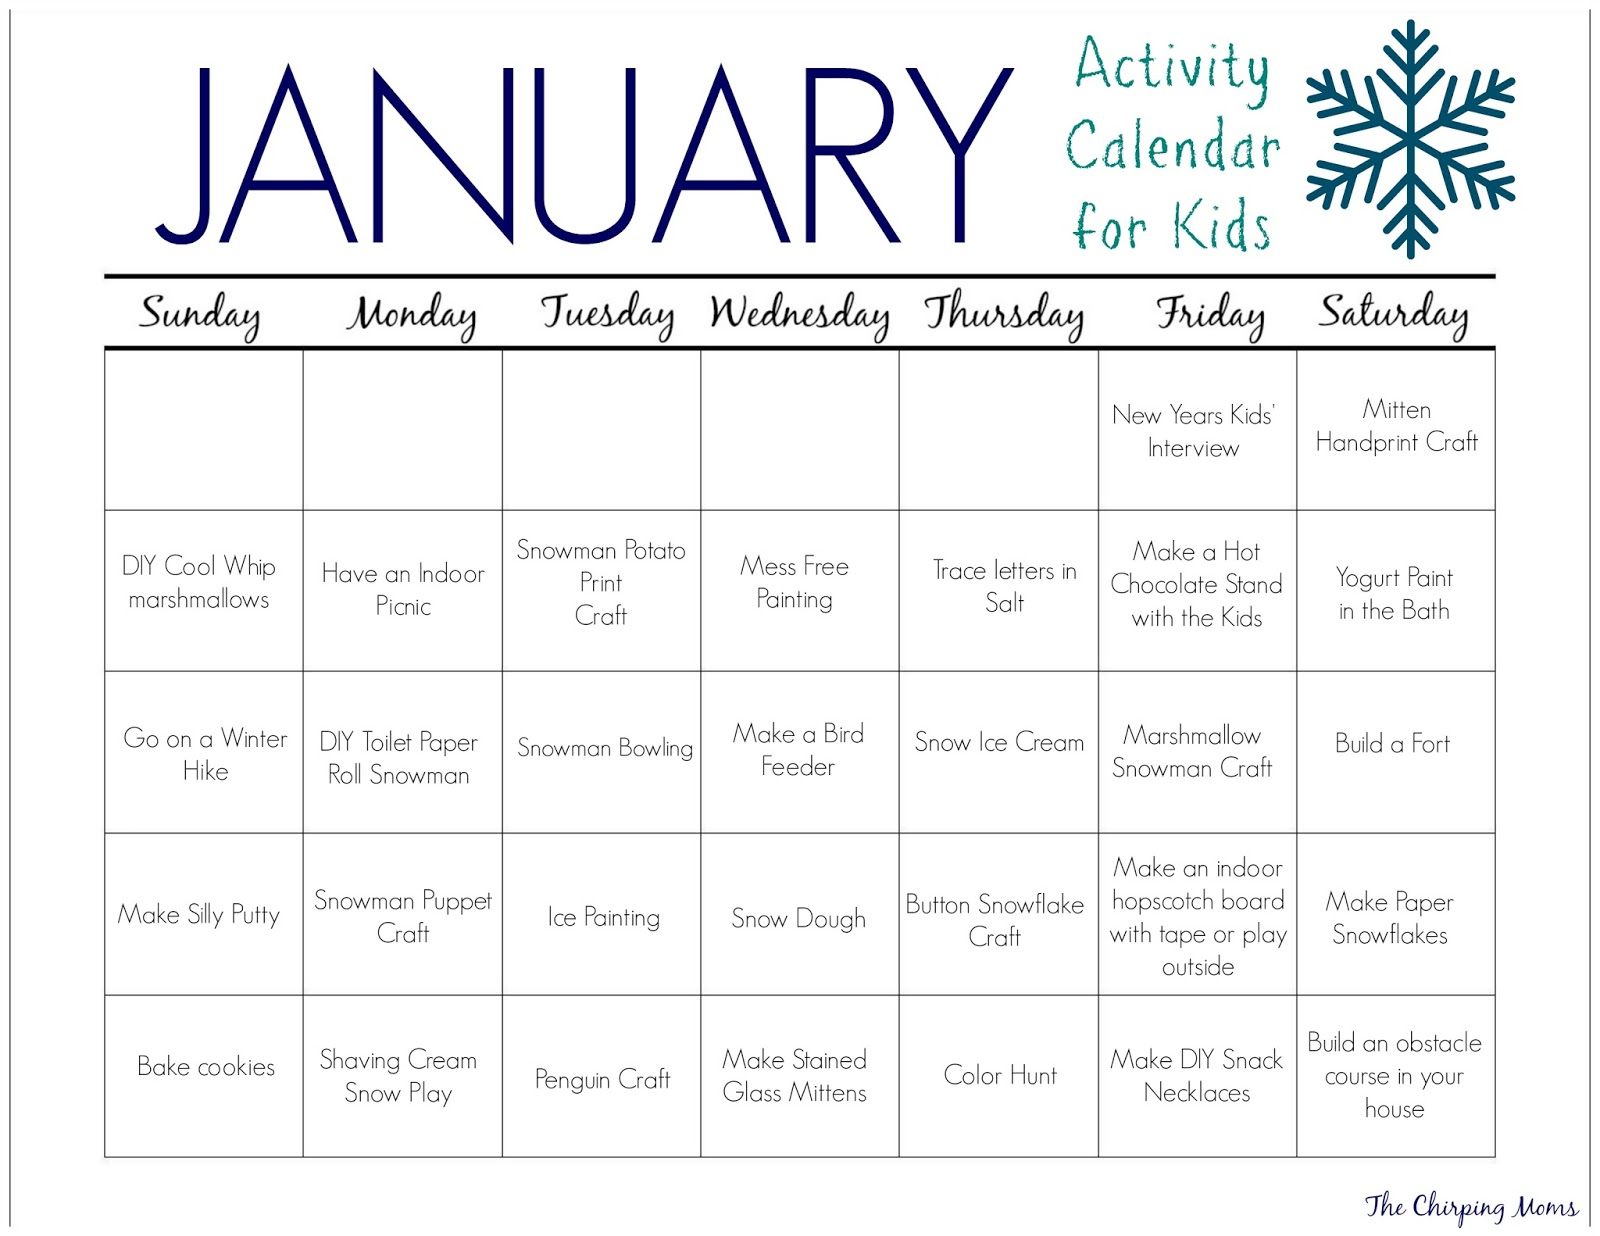 31 January Activities Amp Crafts For Kids Free Activity Calendar